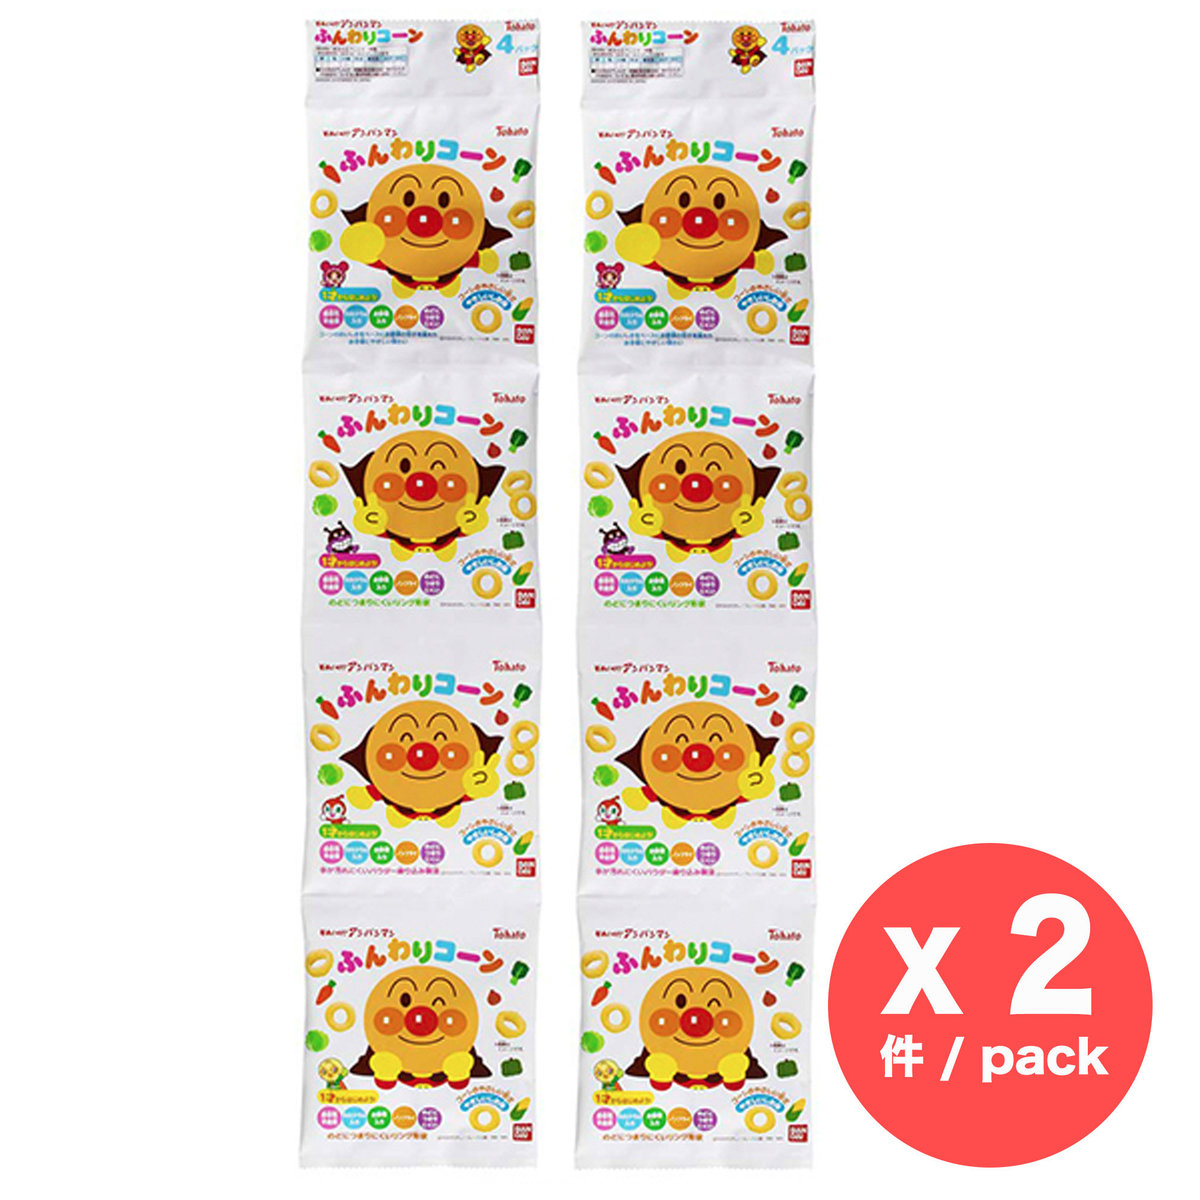 Anpanman 1 year old toddler corn snack small pack x 2 pcs